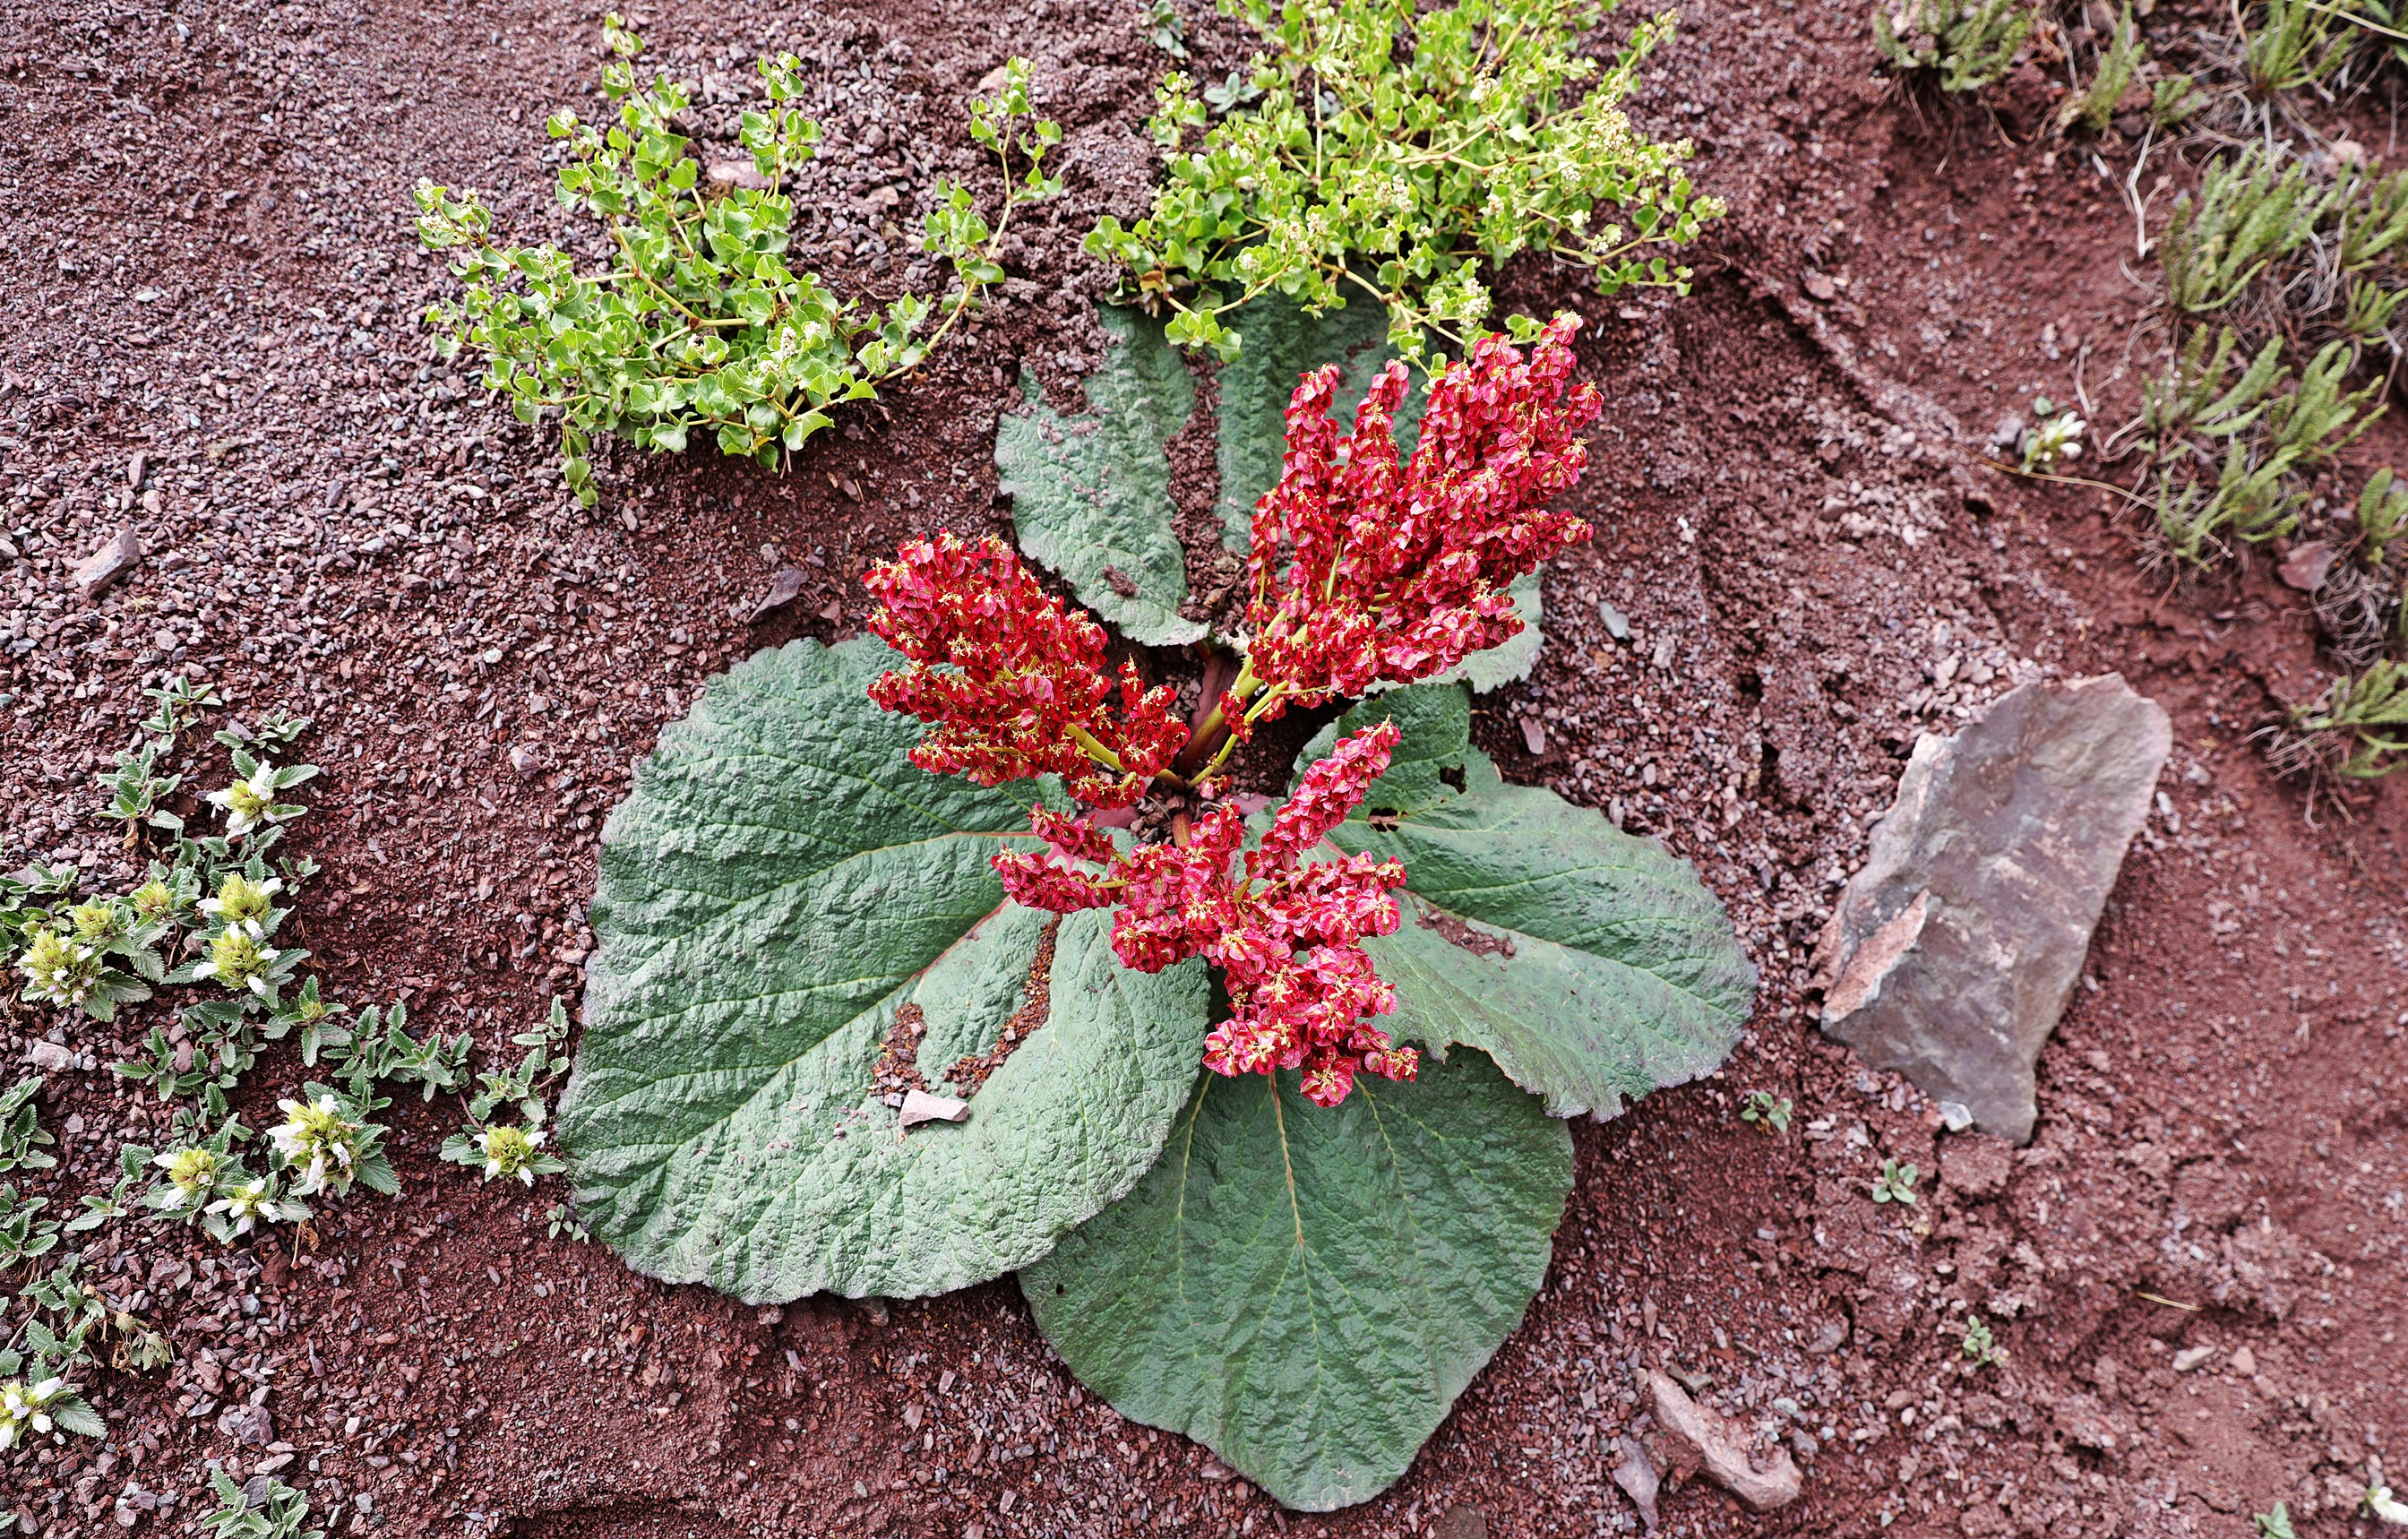 Alpine flower that looks like rhubarb, Markha Valley trek